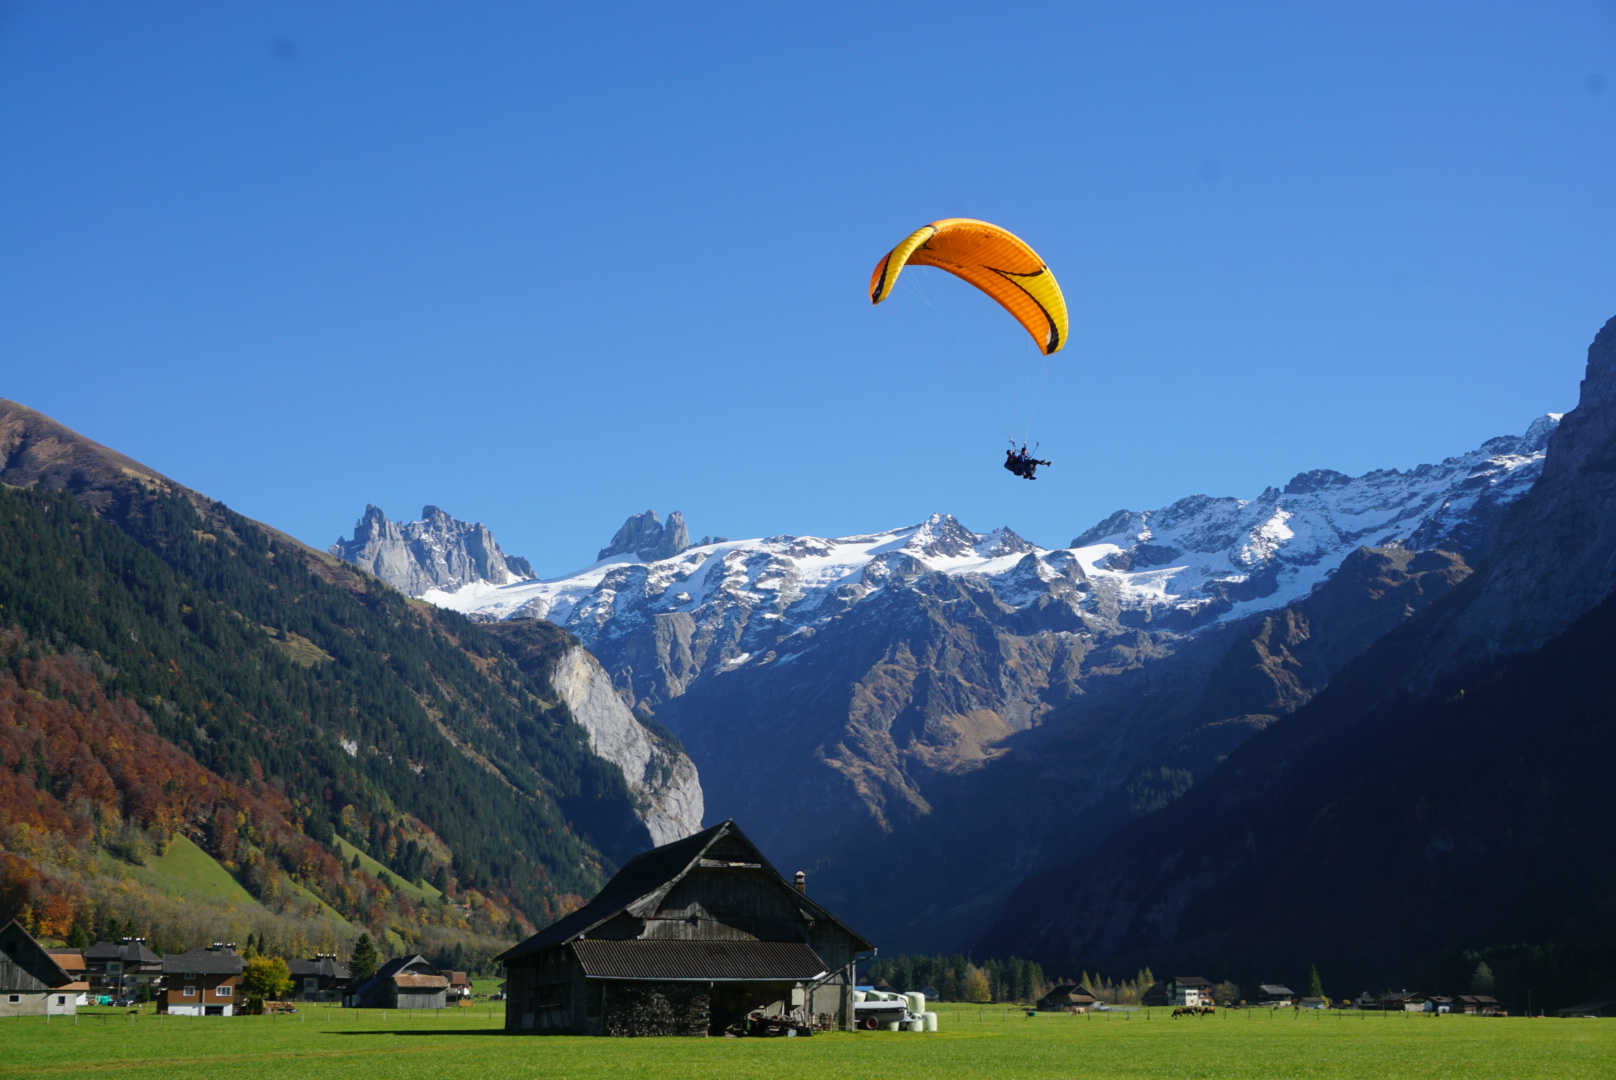 Paragliding in Engelberg, Switzerland